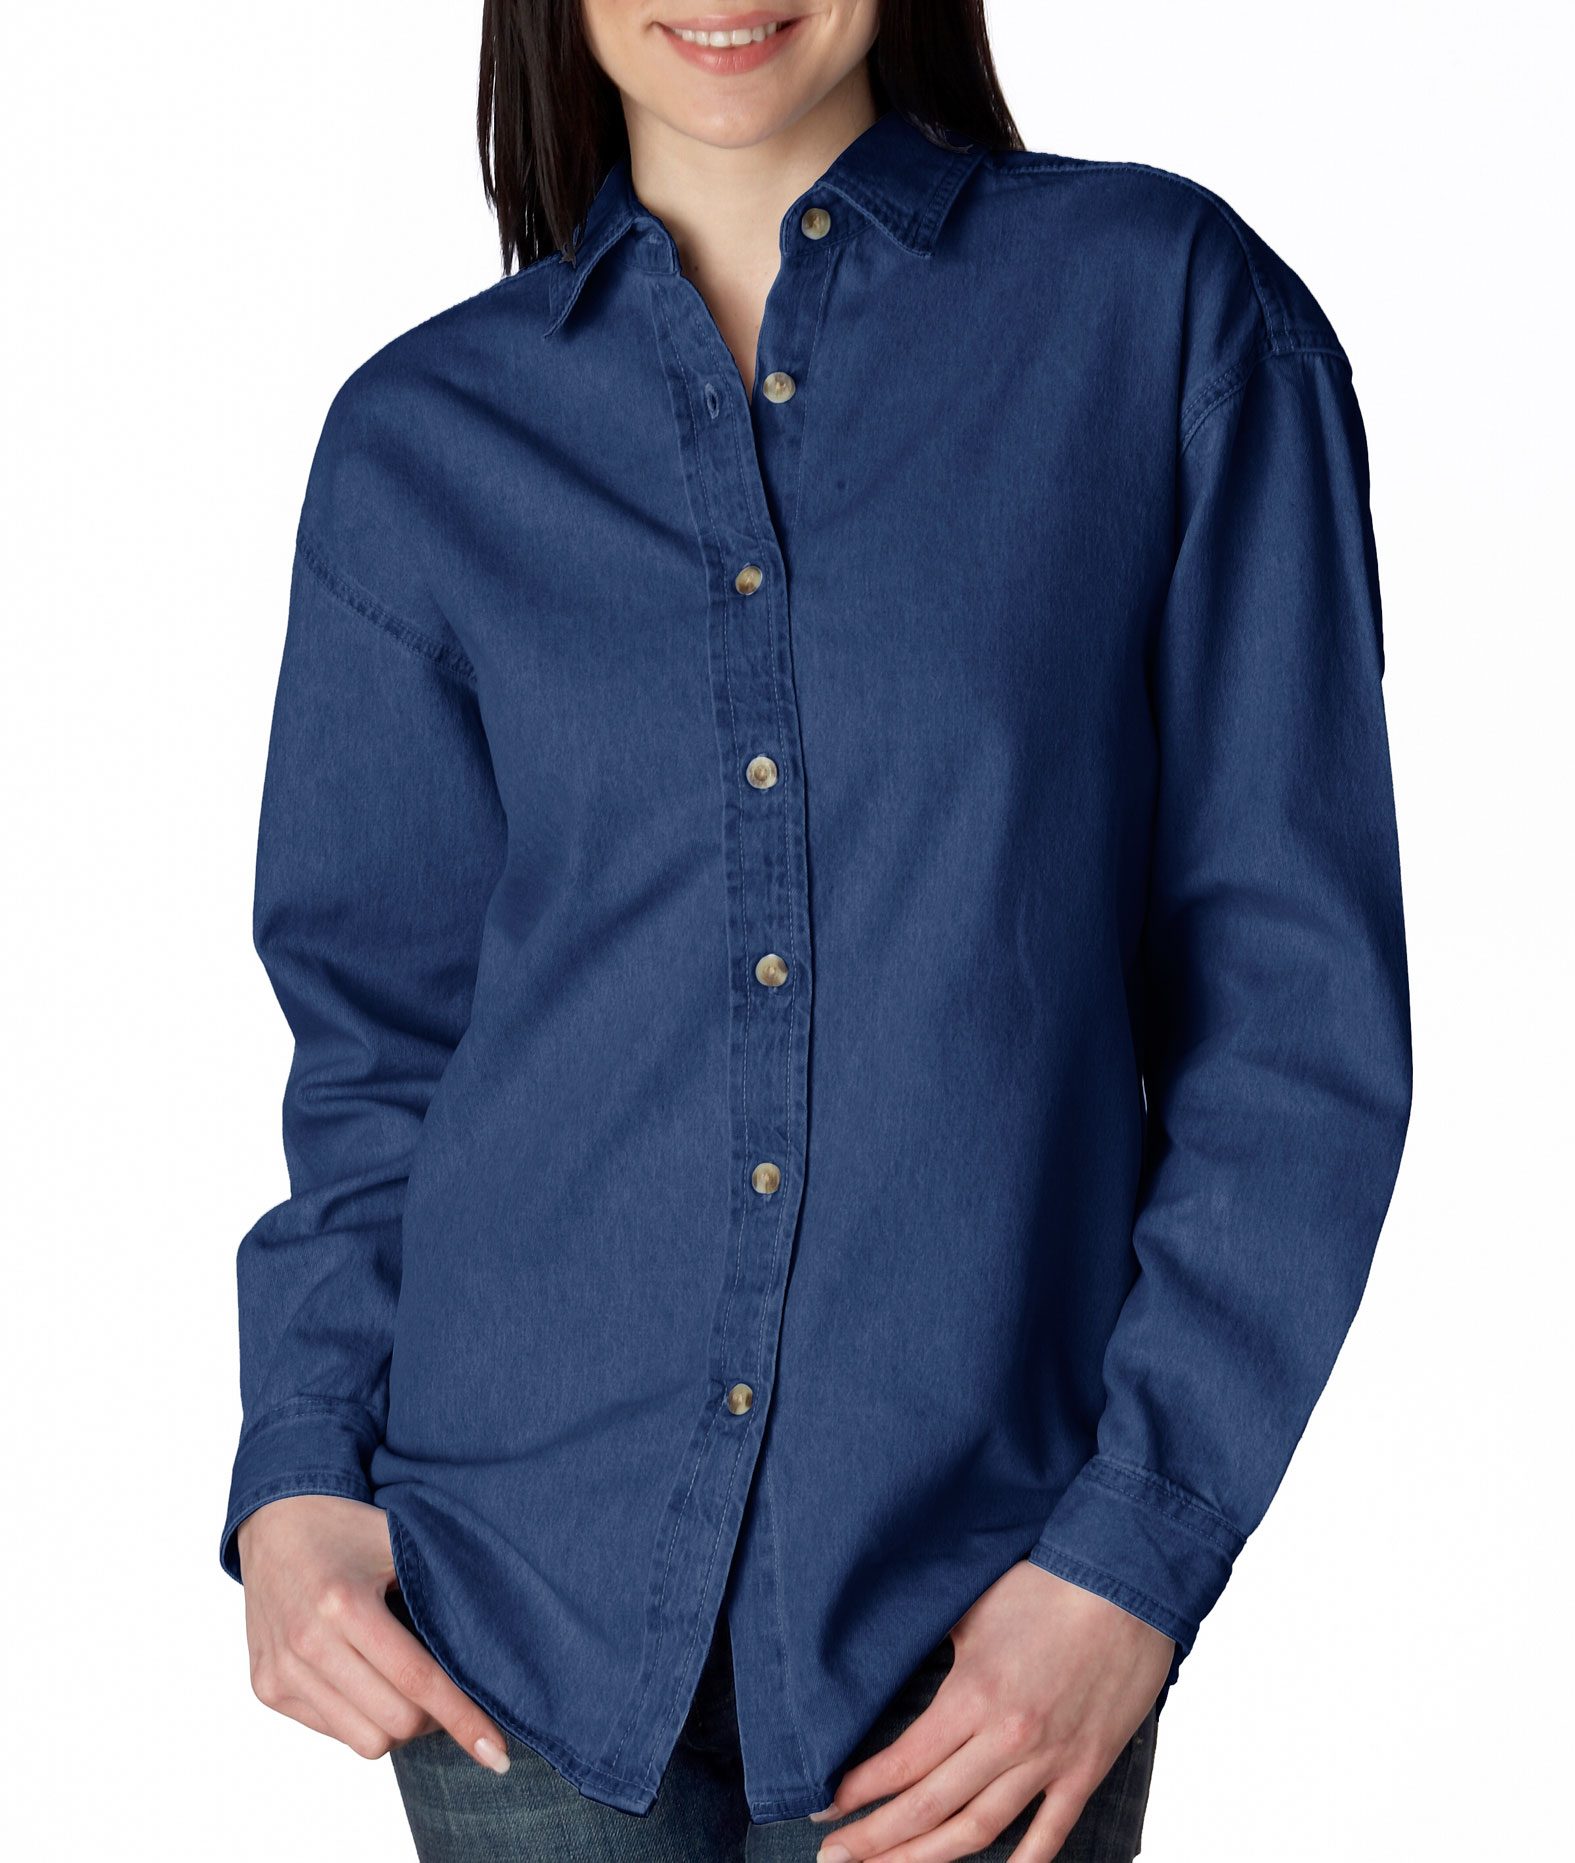 Womens Long Sleeve Denim Shirt Intro Special